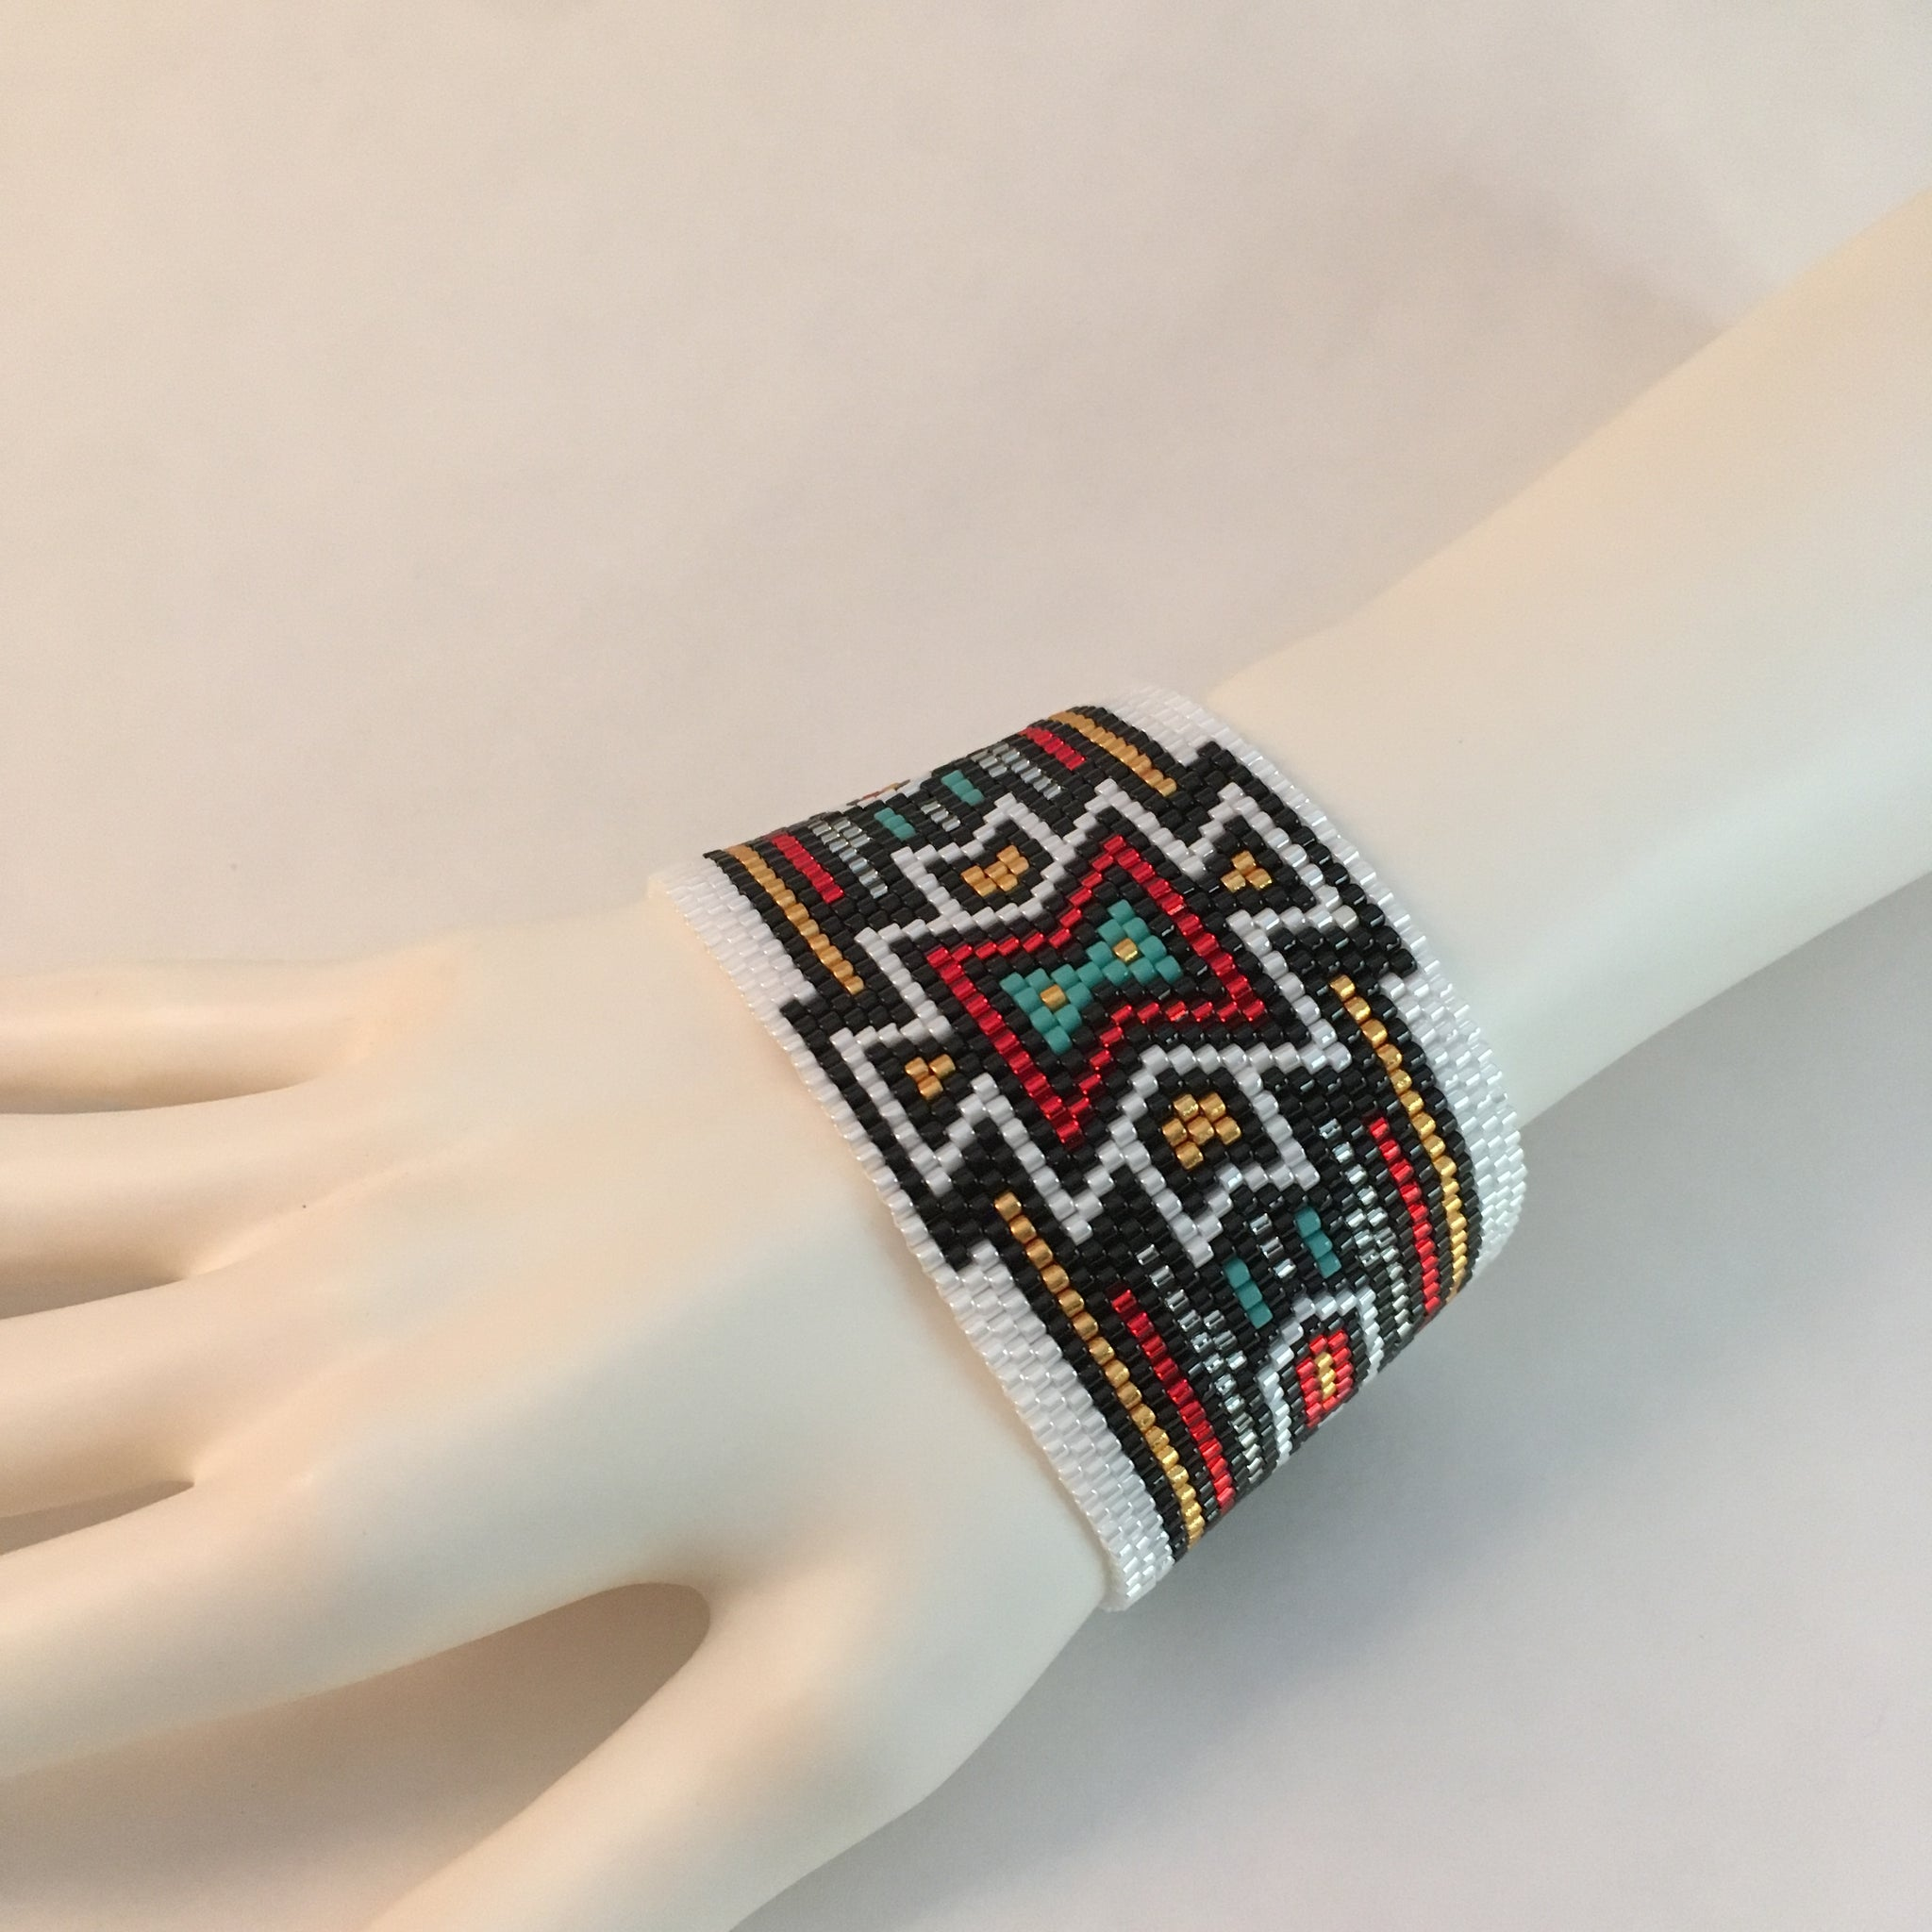 Southwest Ralph Lauren style laid back peyote hand made beaded bracelet original custom design boho feel